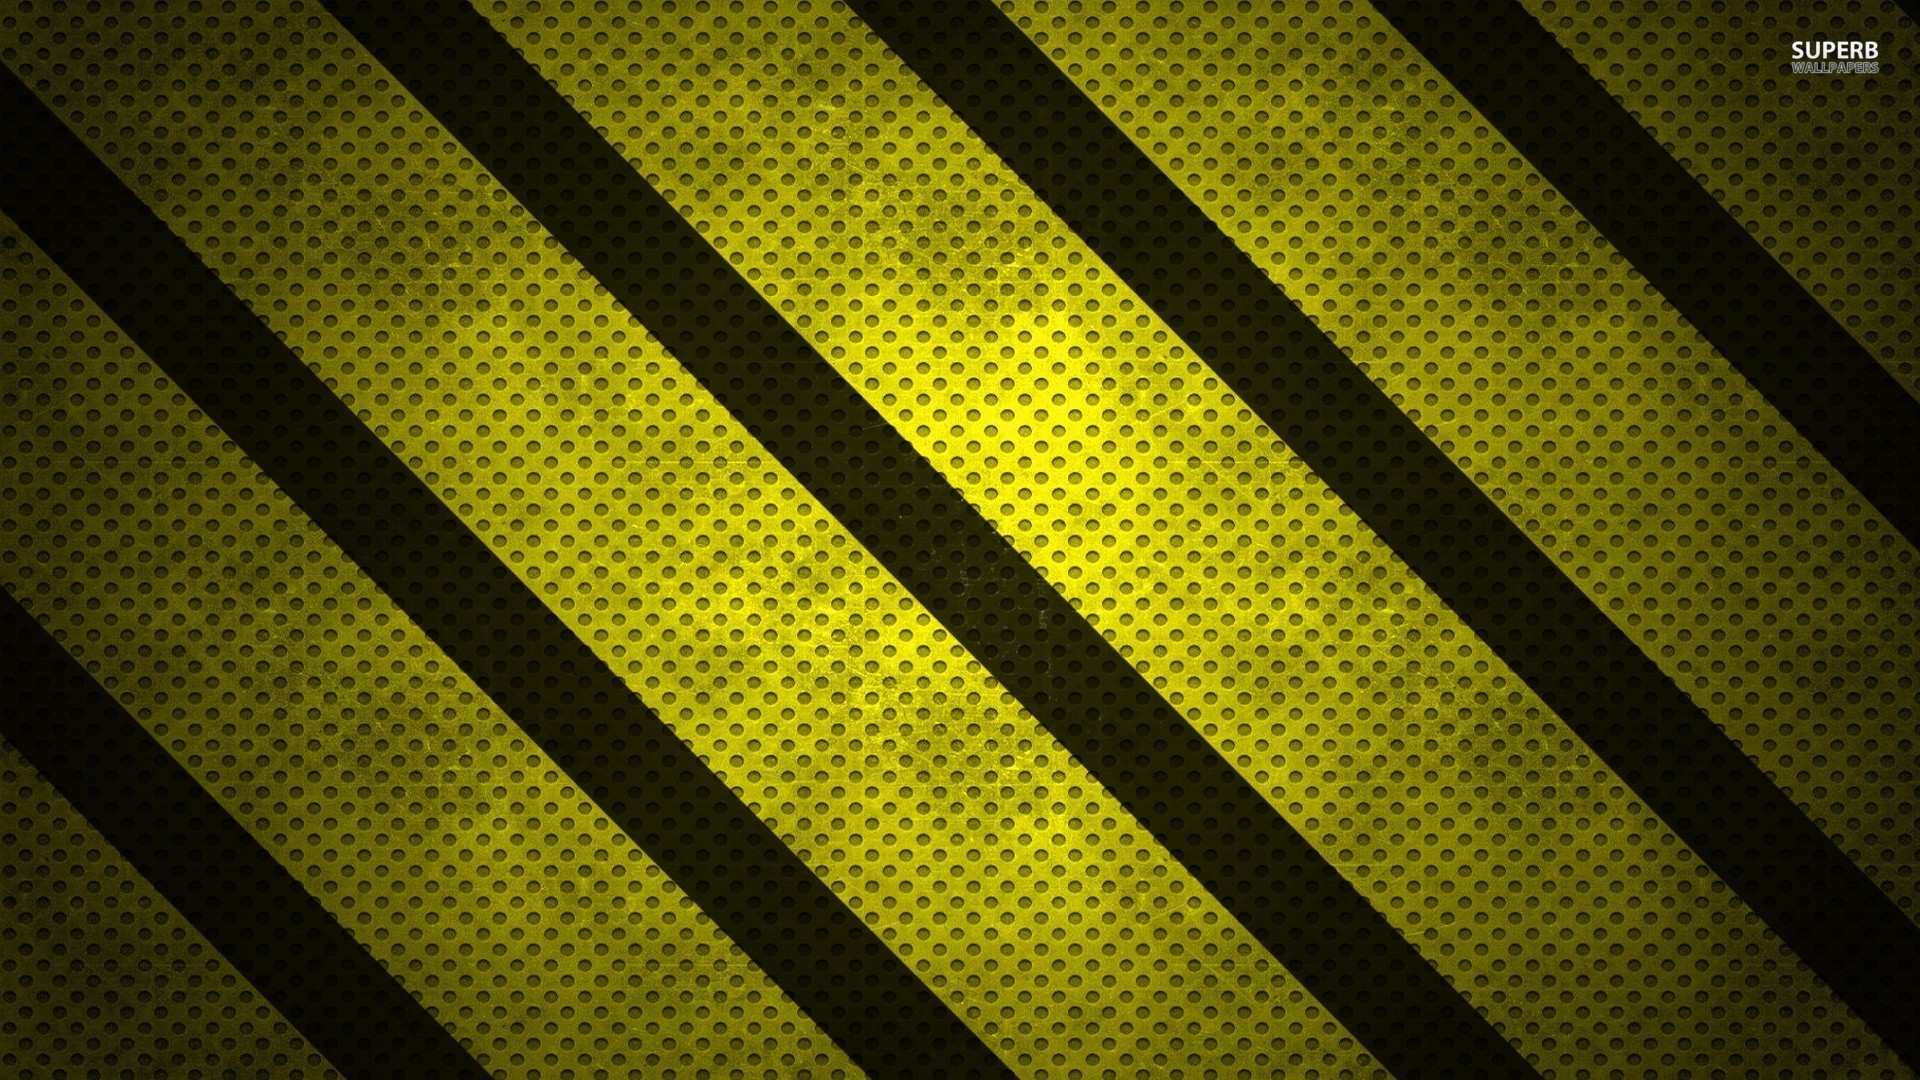 Black And Yellow HD Wallpaper (65+ Images